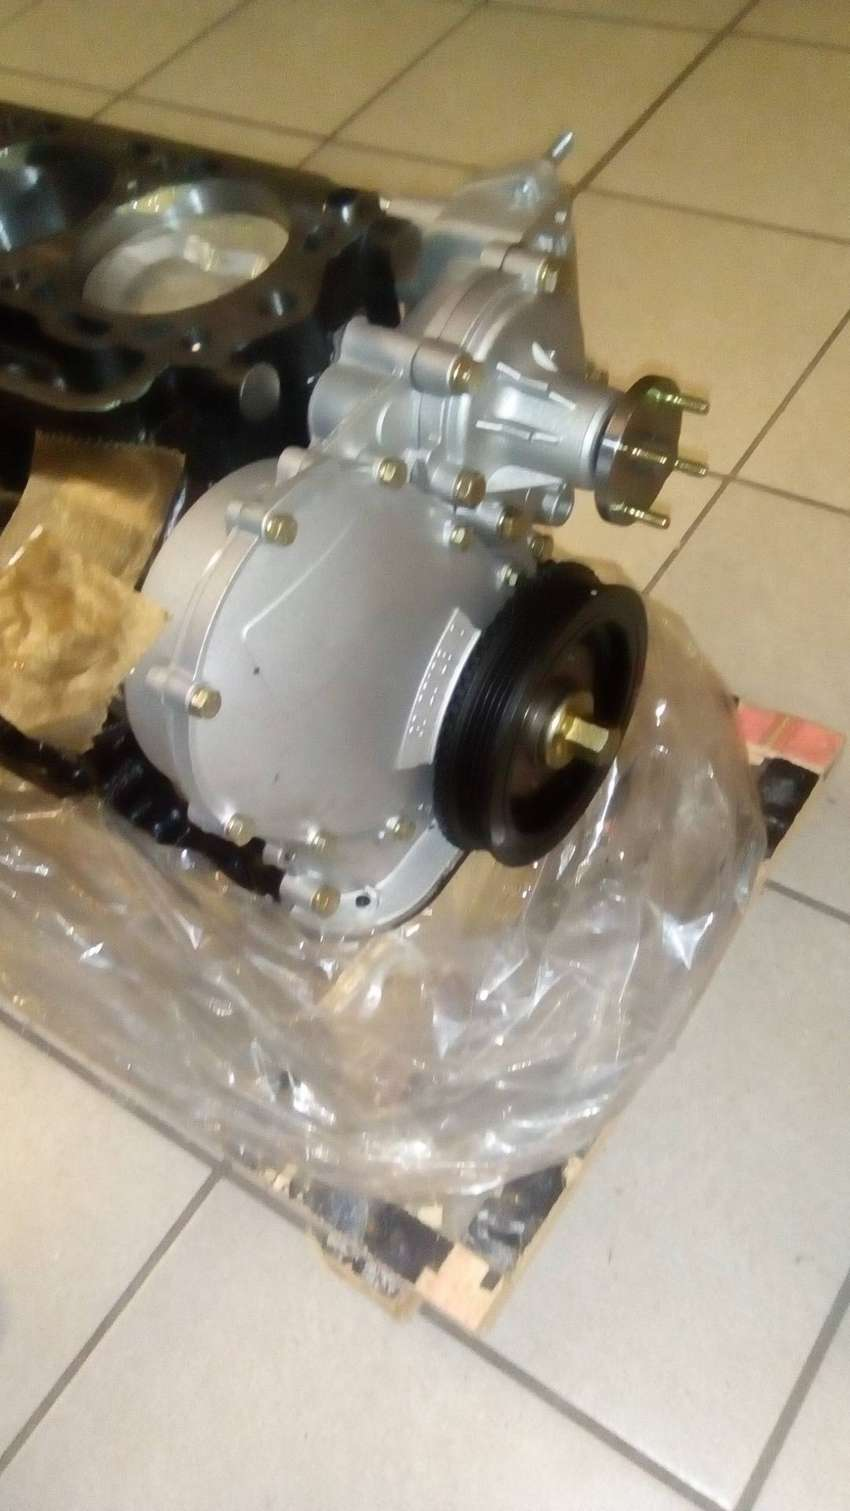 BRAND NEW TOYOTA HI-LUX / HI-ACE 2200 HALF ENGINES - 4Y 0